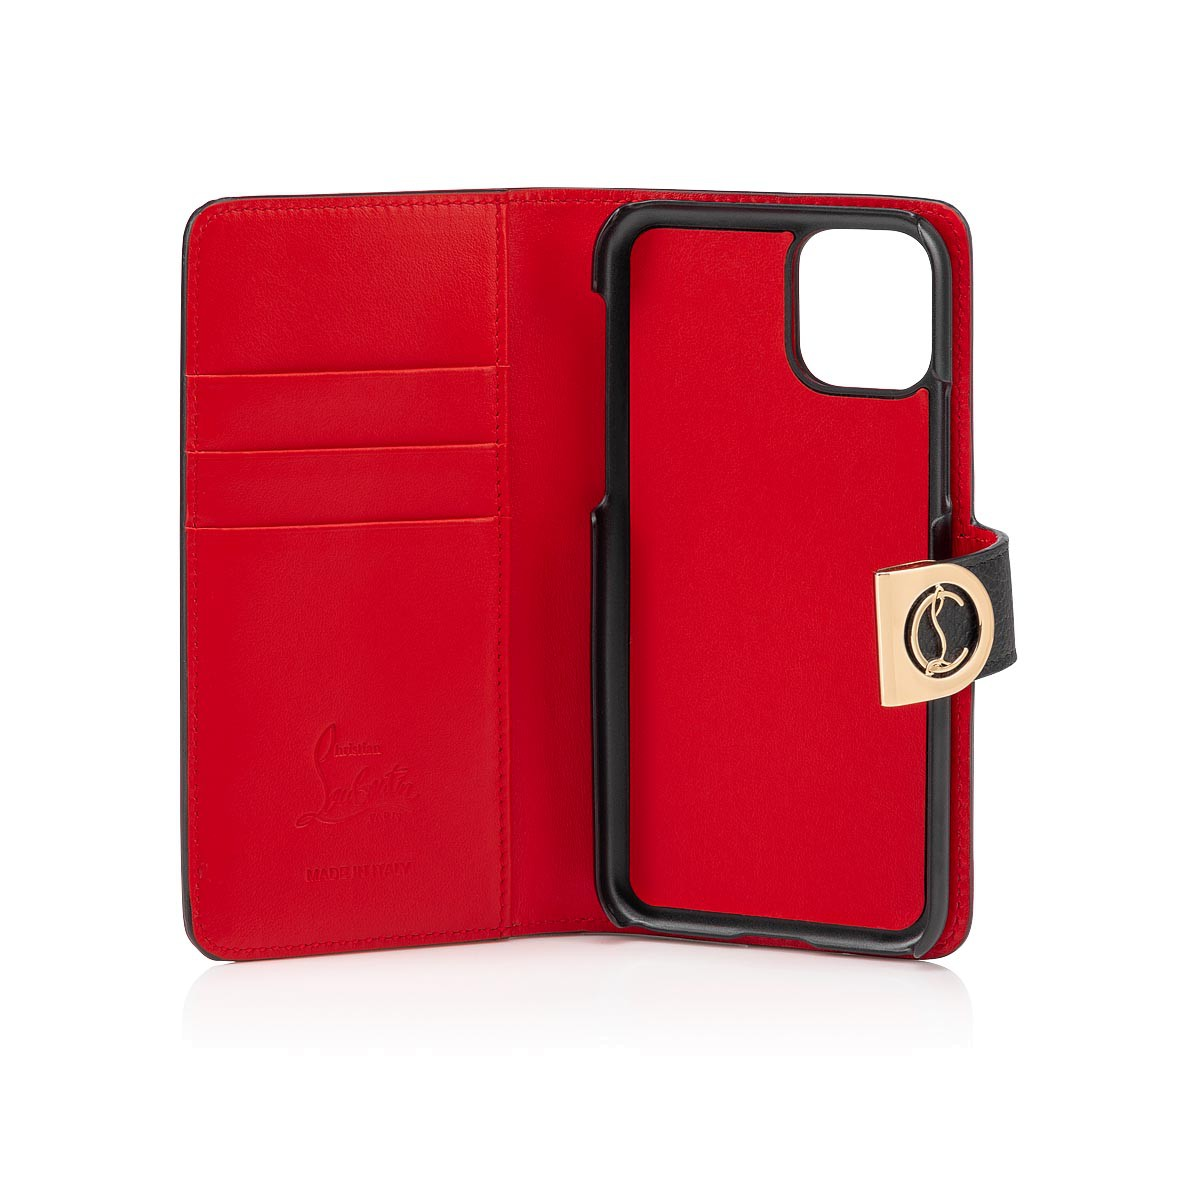 Small Leather Goods - Elisa Flap Case Iphone 11 Pro - Christian Louboutin